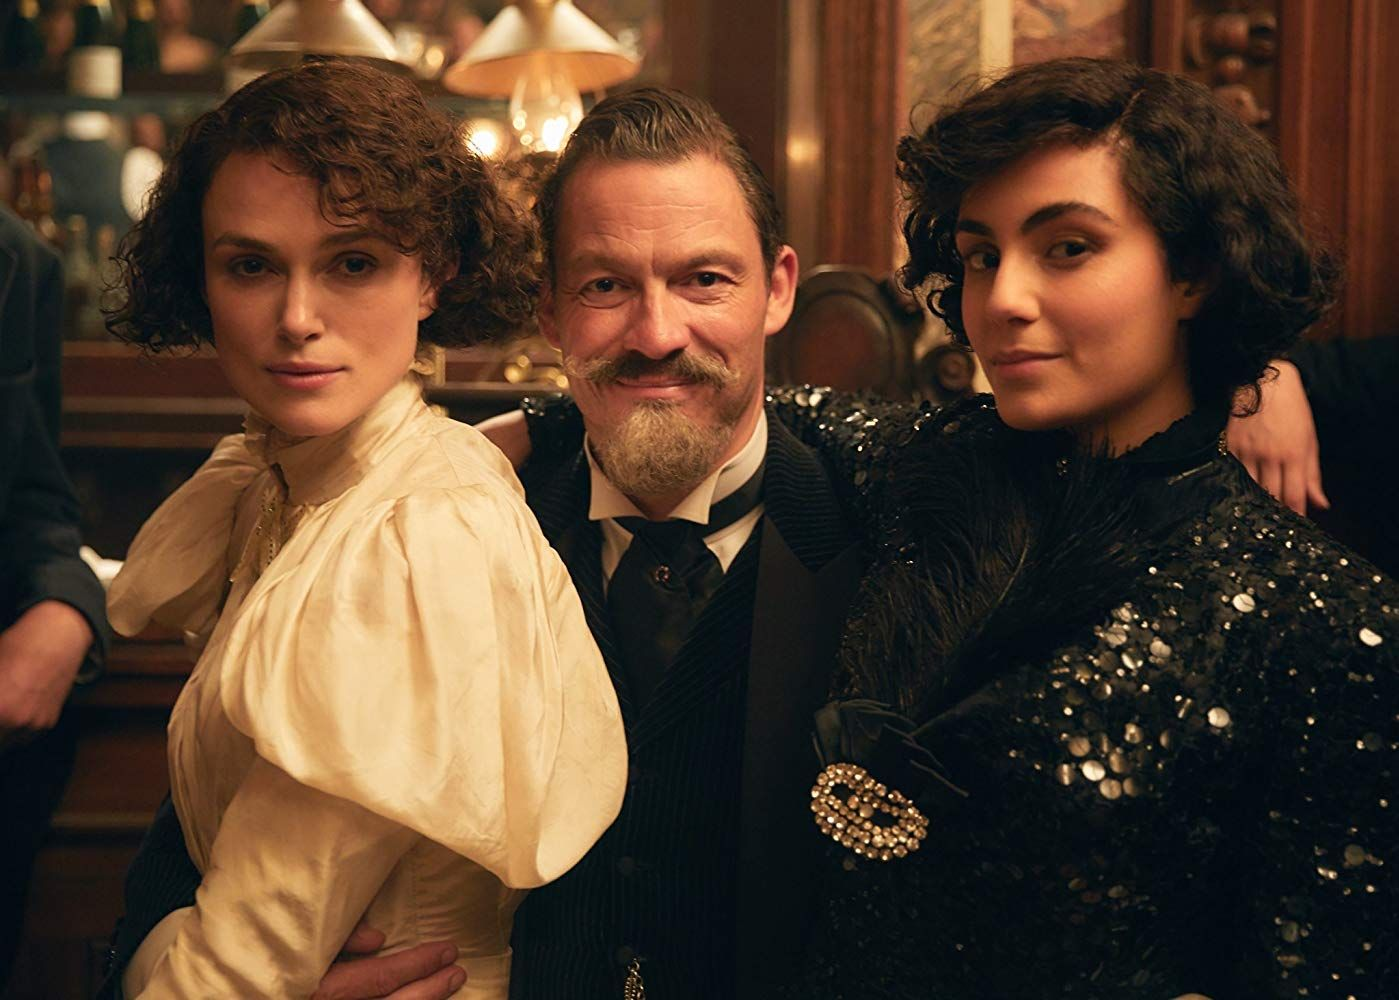 Keira Knightley Dominic West And Aiysha Hart In Colette 2018 Film Inspiration Keira Knightley Movies